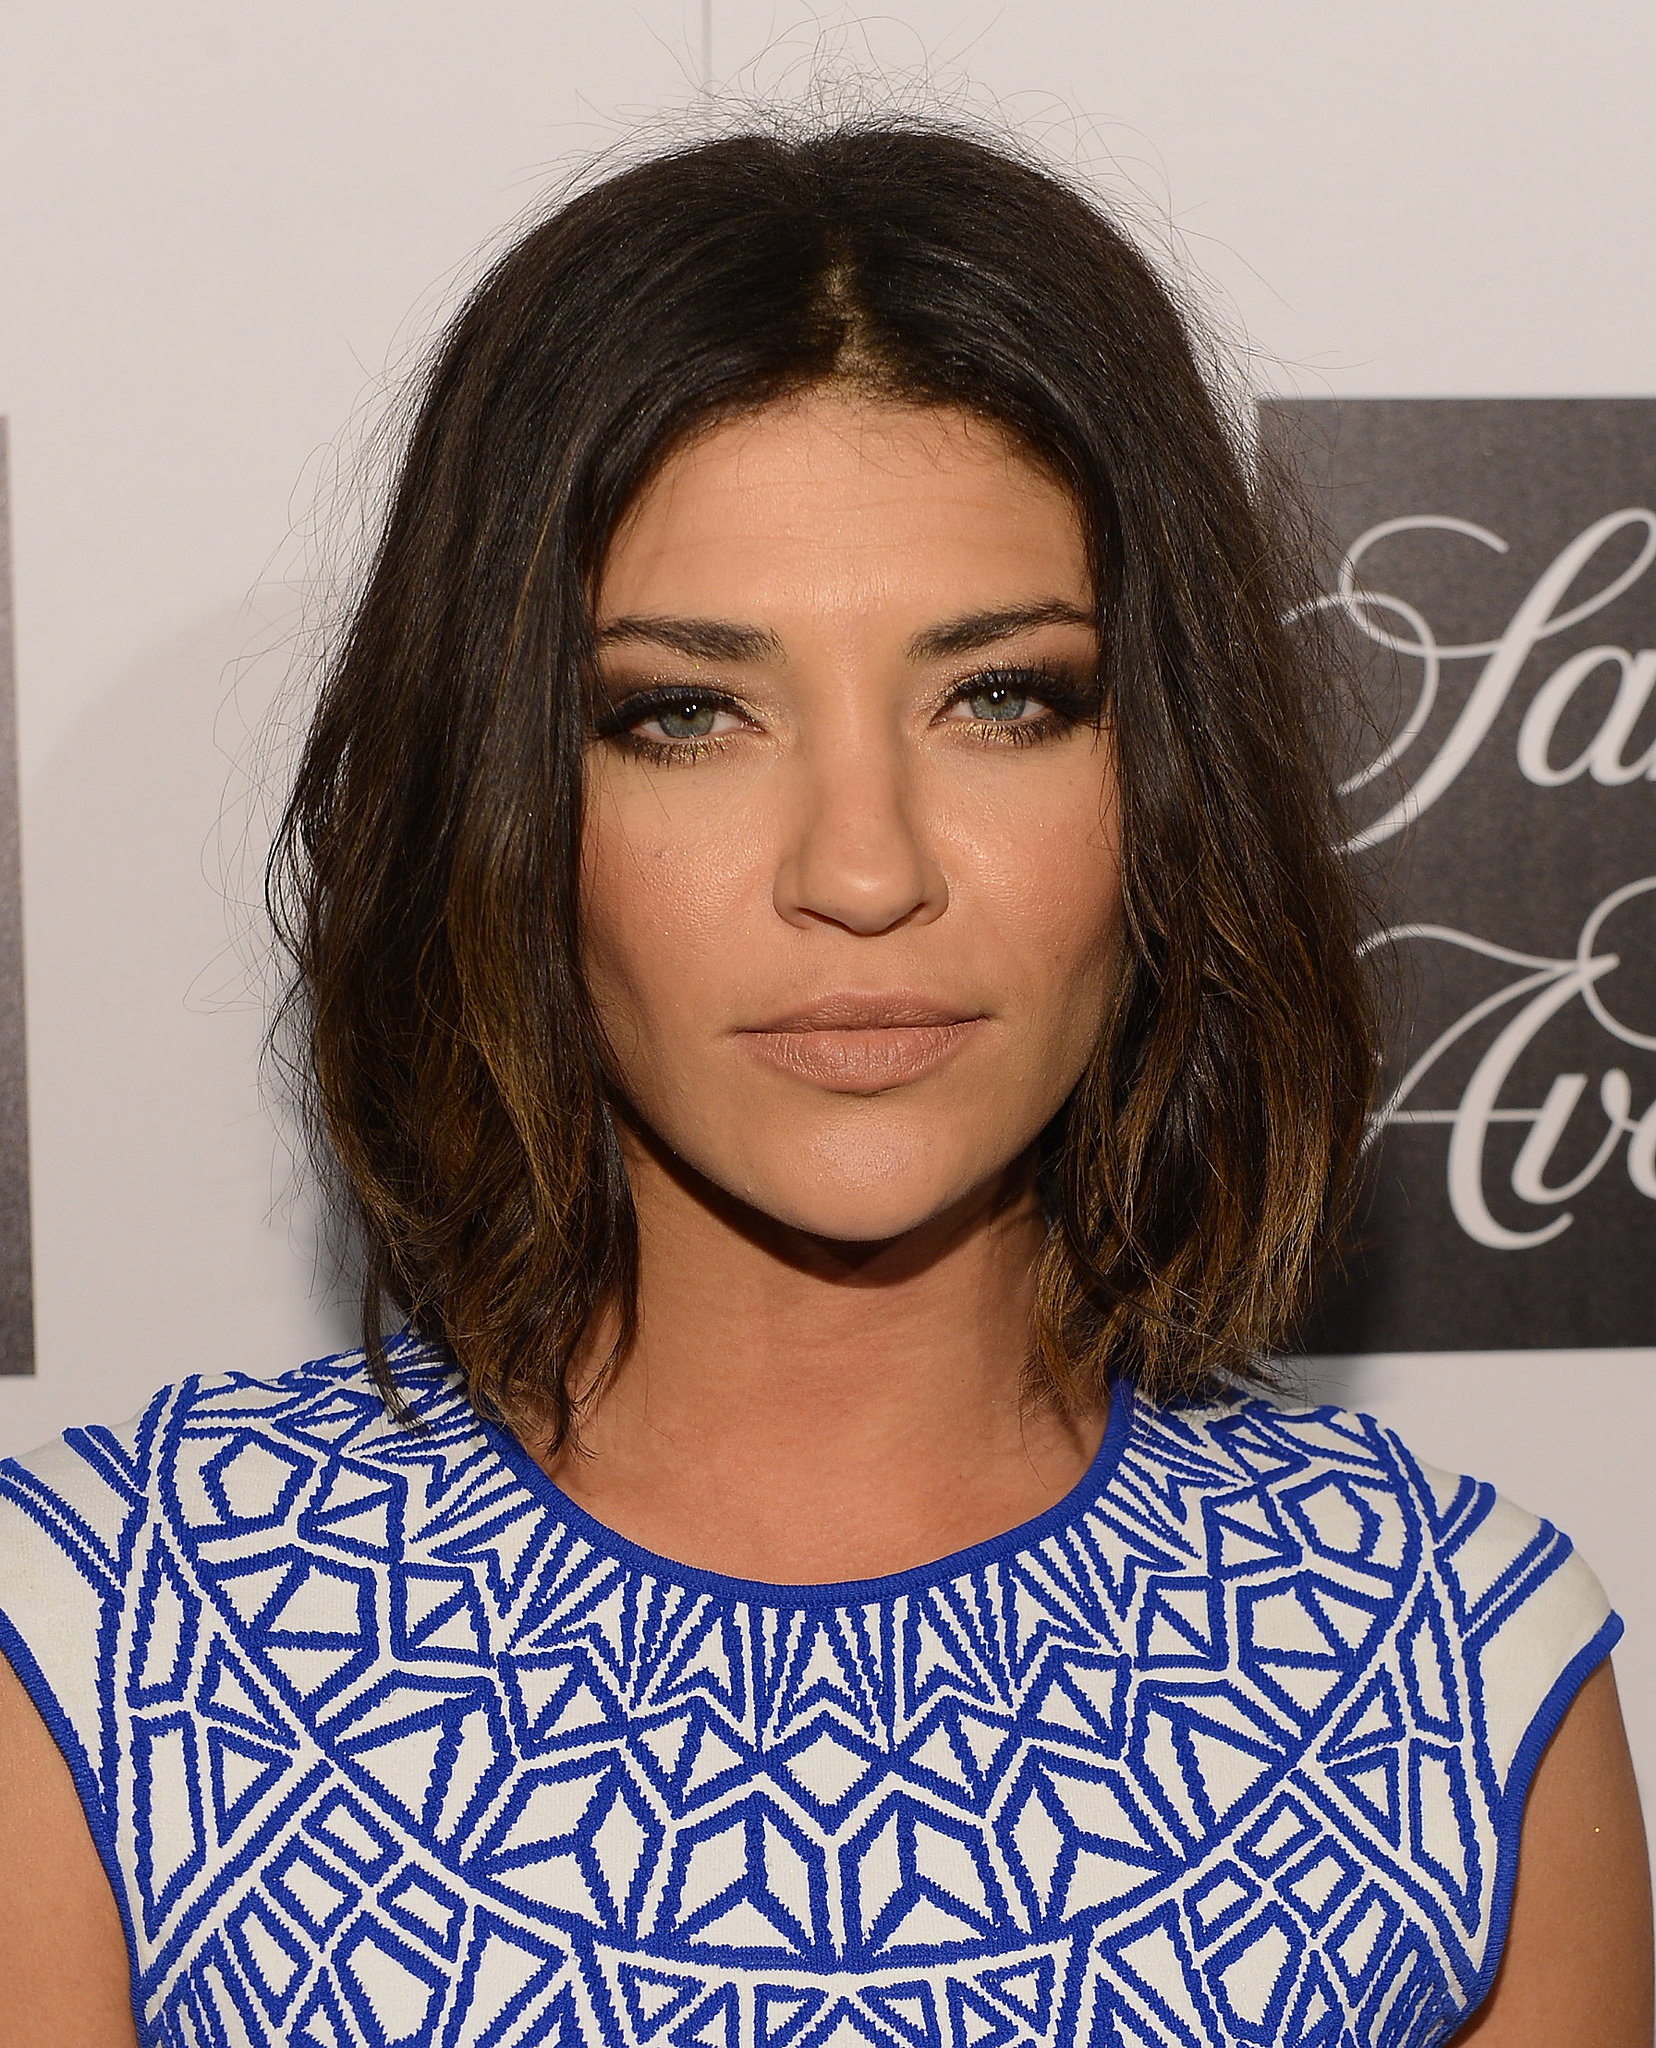 jessica szohr parentsjessica szohr tumblr, jessica szohr gifs, jessica szohr film, jessica szohr twitter, jessica szohr vk, jessica szohr and chace crawford, jessica szohr dating, jessica szohr parents, jessica szohr mother, jessica szohr instagram, jessica szohr and ed westwick, jessica szohr and taylor swift, jessica szohr fansite, jessica szohr music video, jessica szohr boyfriend, jessica szohr and nina dobrev friends, jessica szohr zimbio, jessica szohr birthday